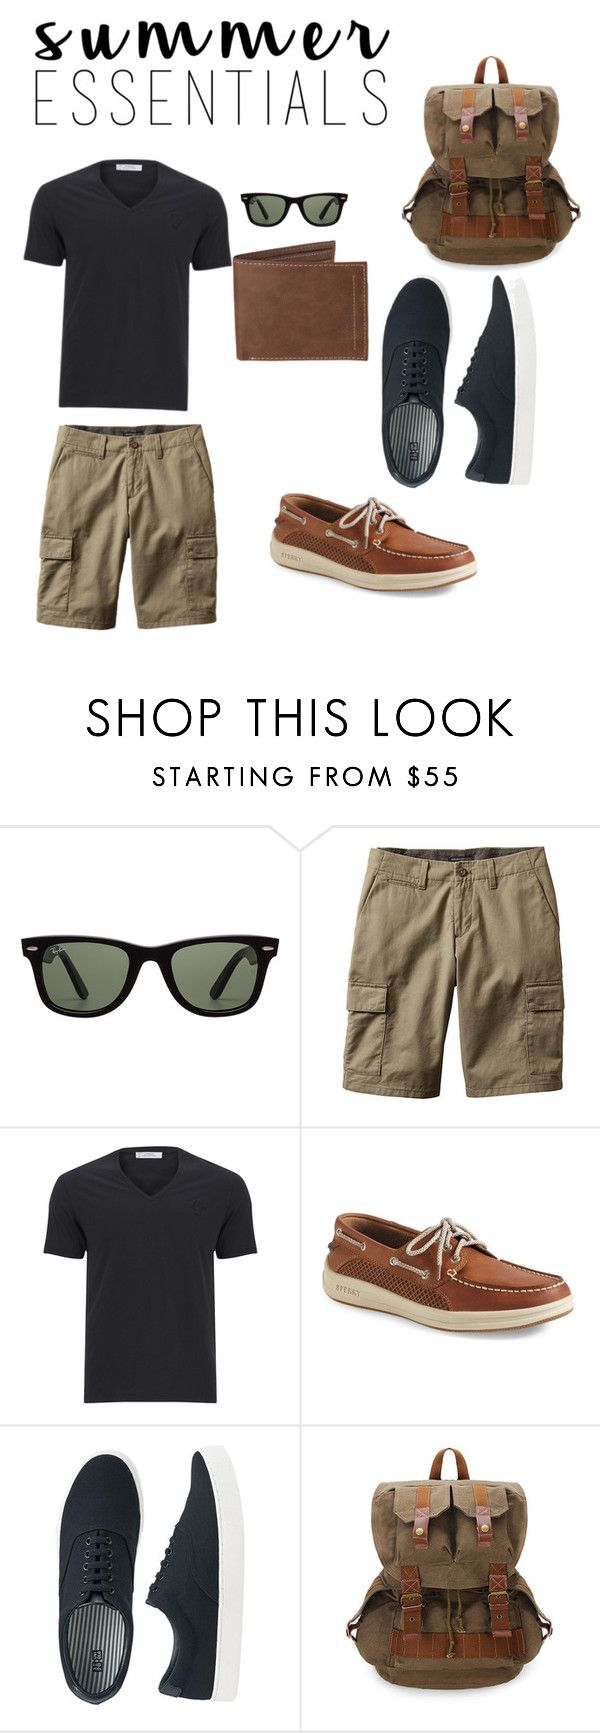 """beach boardwalk"" by sollangex ❤ liked on Polyvore featuring Ray-Ban, Banana Republic, Versace, Sperry, Uniqlo, Levi's, men's fashion, menswear and summermenswearessentials"